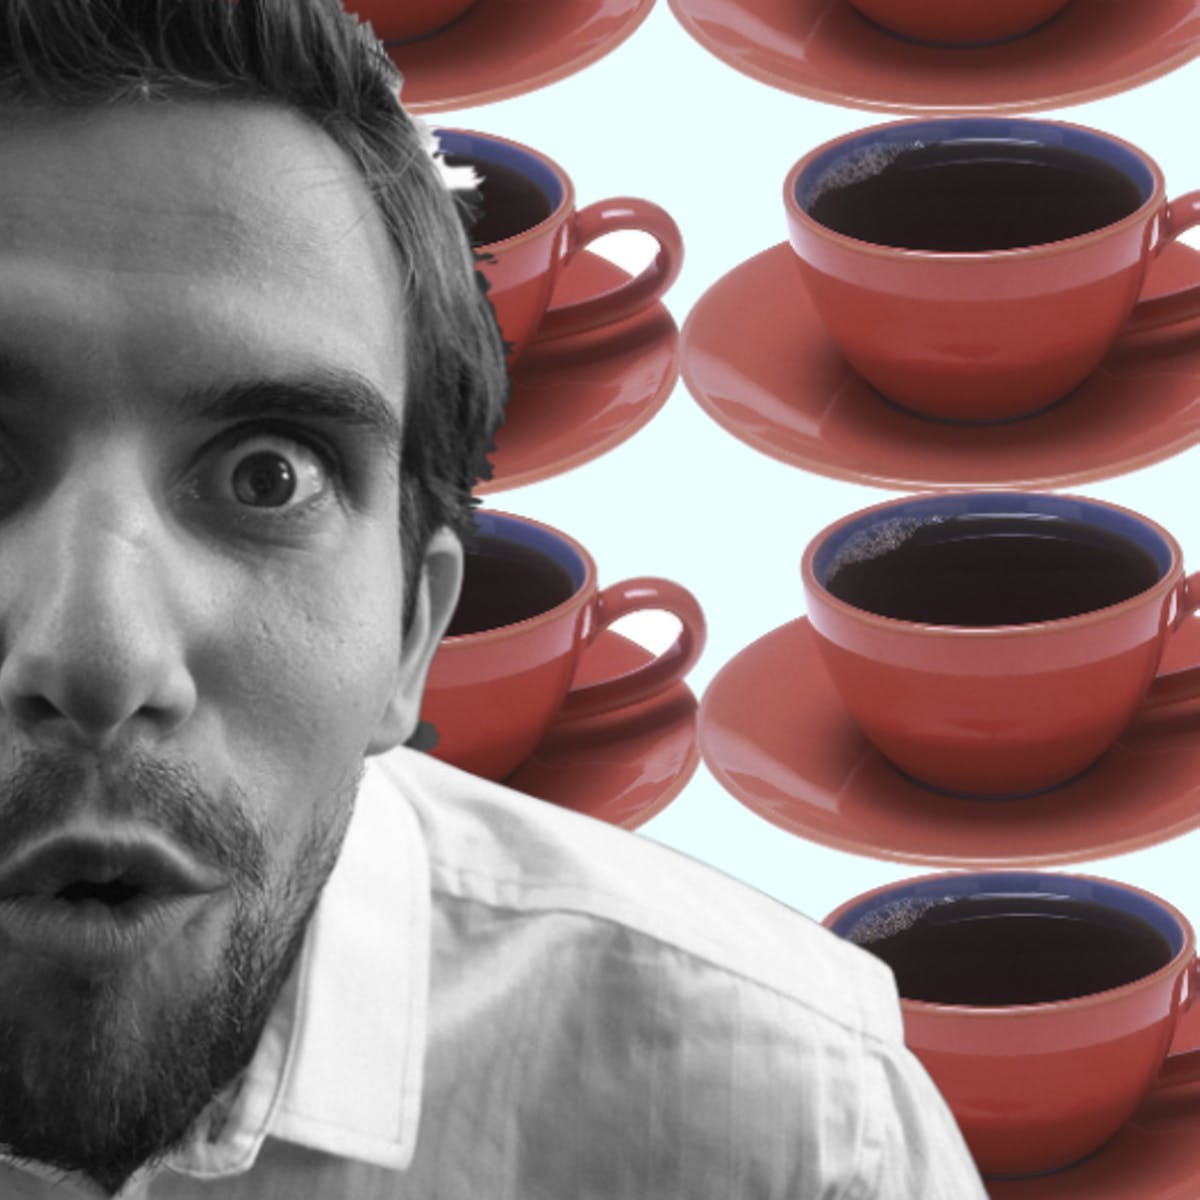 University Accident Proves The Danger of Drinking 300 Cups